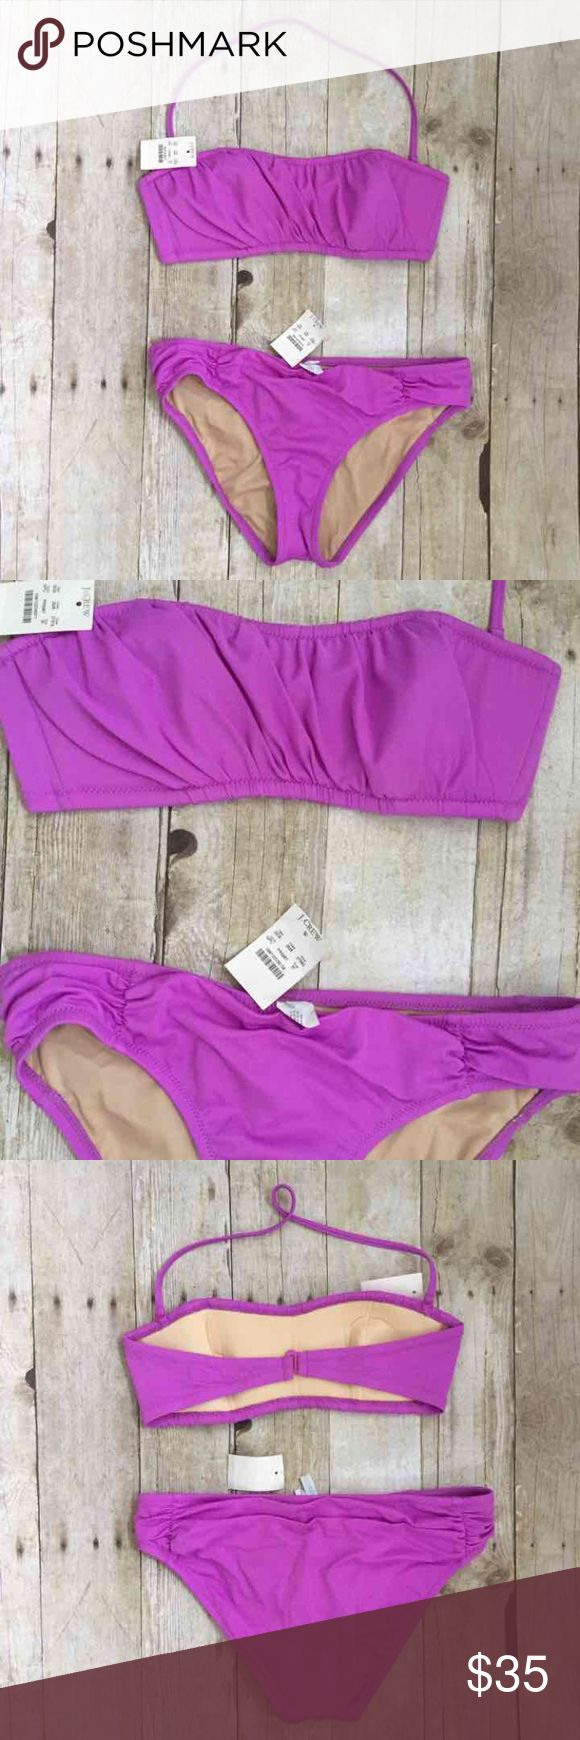 "J. Crew | Pink Purple Bandeau Top Bikini NWT. Selling only as a set. Top and bottom are size medium. Bra is padded and strap is removal. Photos are true to color. Bust laying flat is 13.5"". Waist laying flat is 15"". Hygiene liner is in place. J. Crew Swim Bikinis"